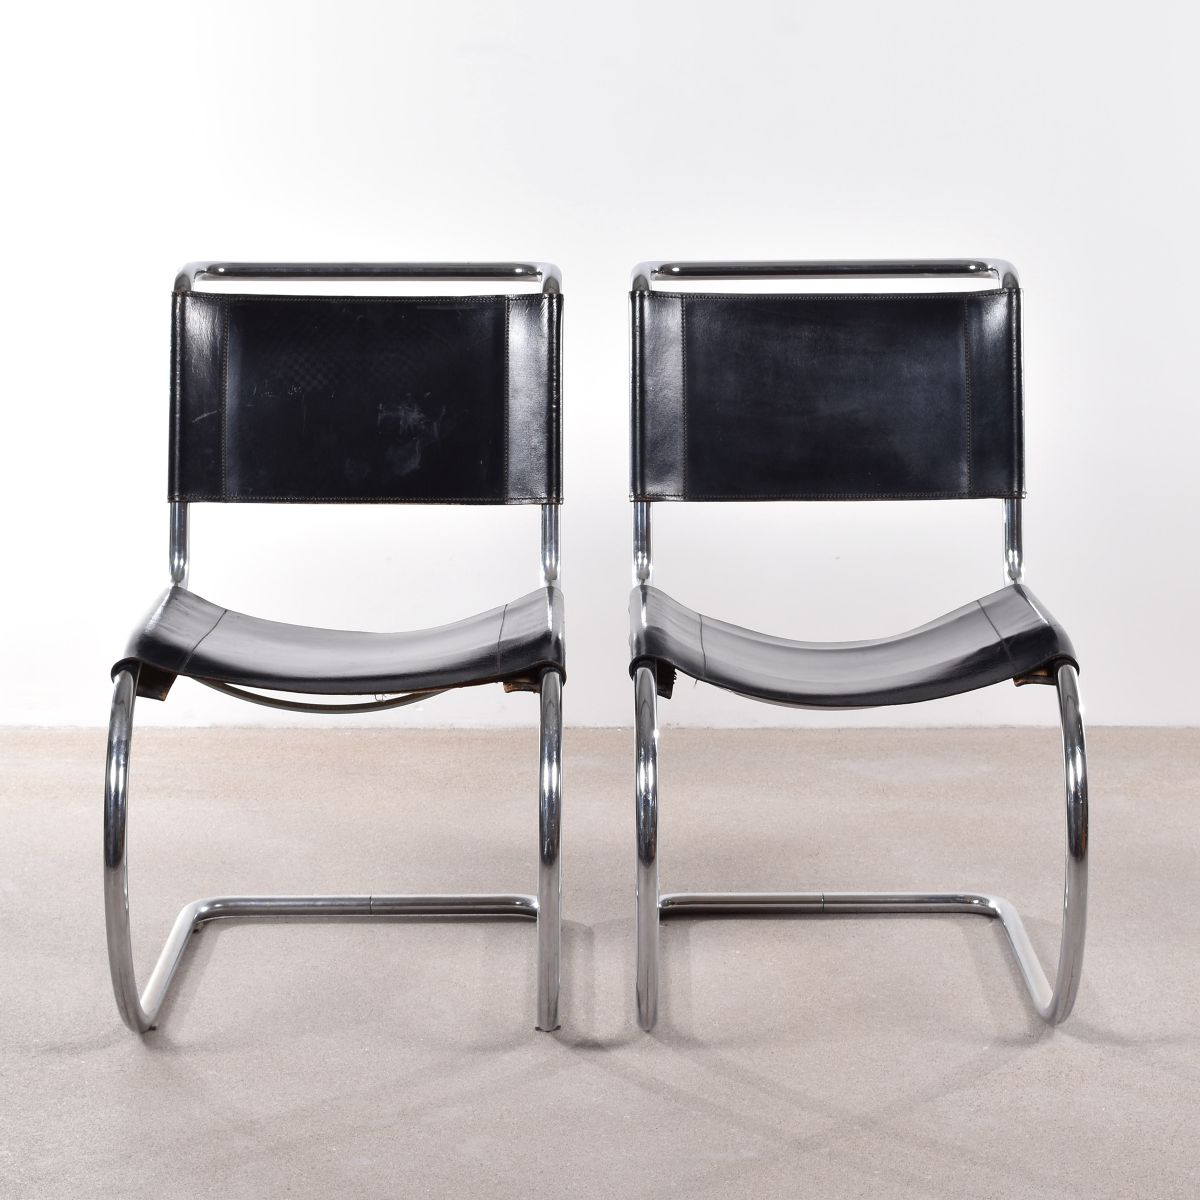 Vintage Mr10 Cantilever Chairs By Ludwig Mies Van Der Rohe